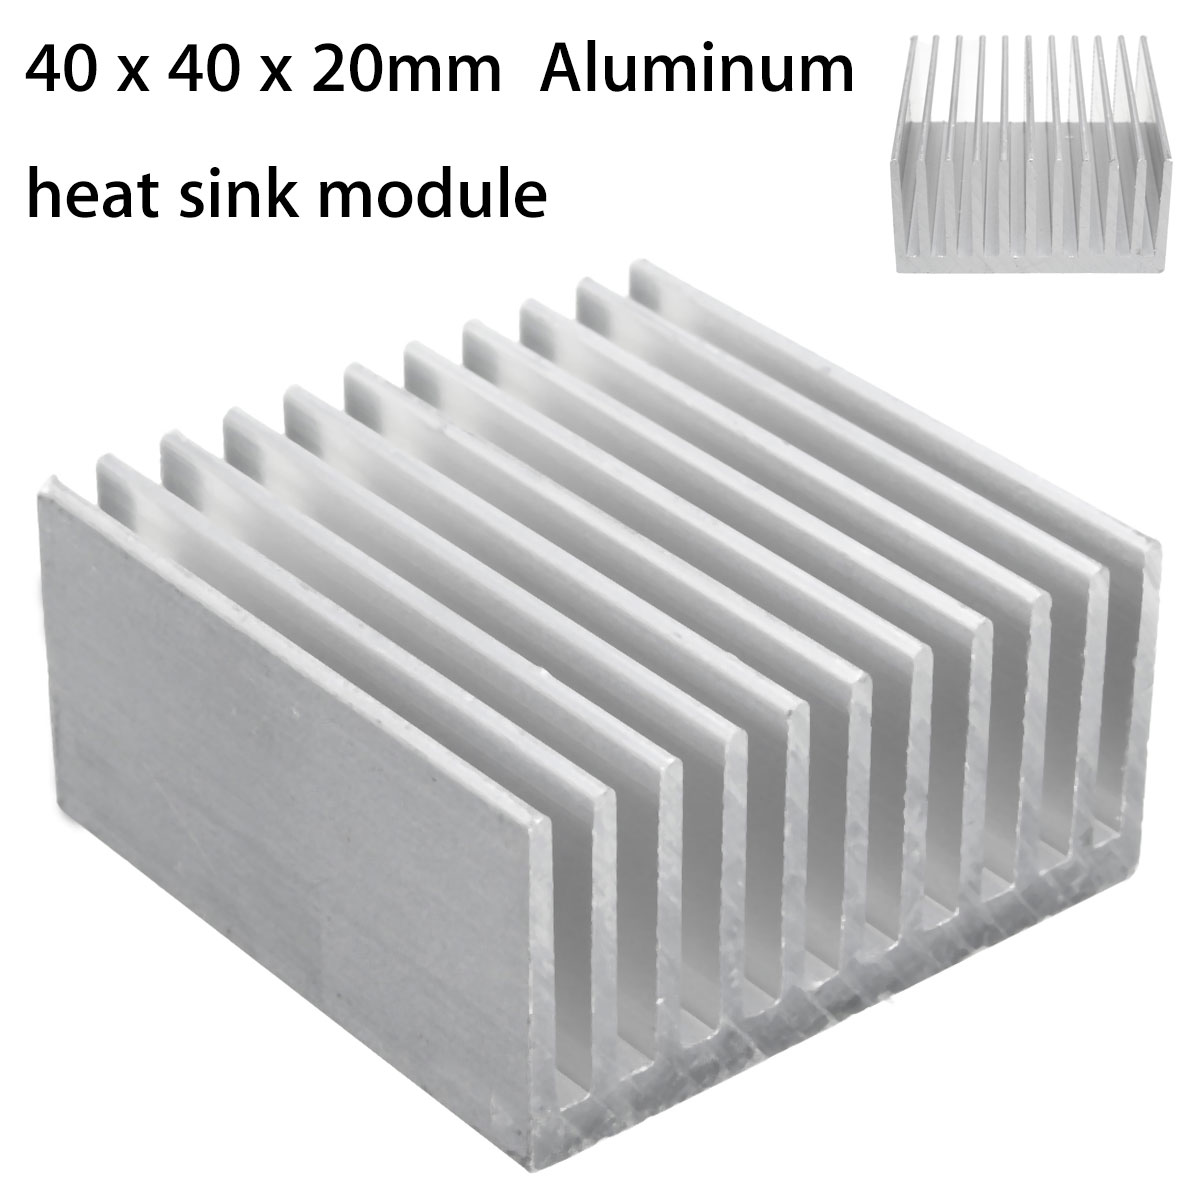 Leory 40x40x20mm Aluminum Heat Sink Cooler IC Heatsink Cooling Fin Radiator For CPU LED Power Component Cooling Accessories 120x69x27mm aluminum radiator high power heatsink for electronic chip cpu gpu vga ram led ic heat sink cooler cooling